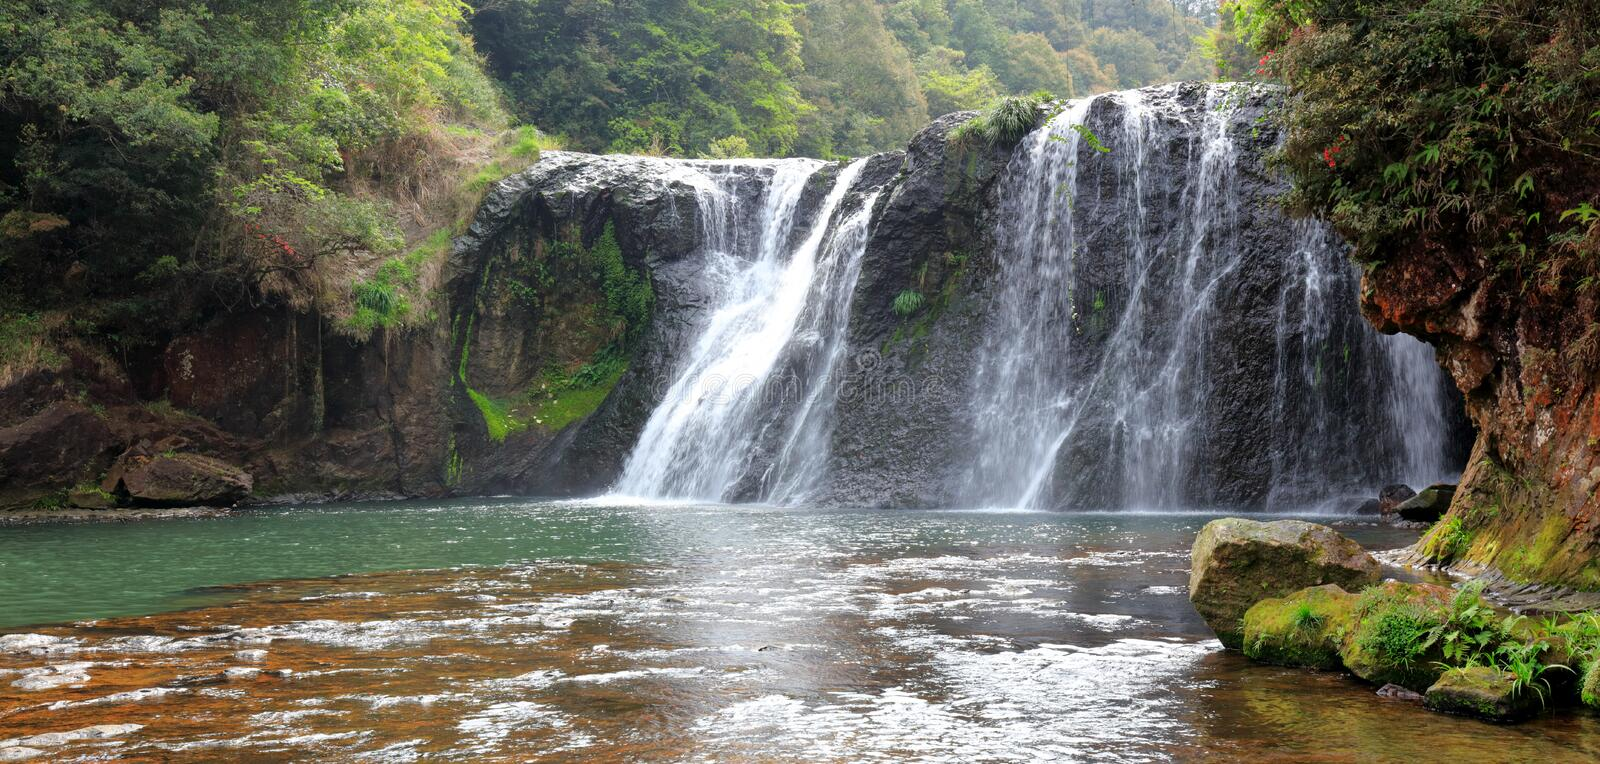 Shuhaipubu waterfall, srgb image. Shuhai waterfall in nanjing county, zhangzhou city, fujian province, china. shuhai waterfall is 45 meters wide and 21 meters